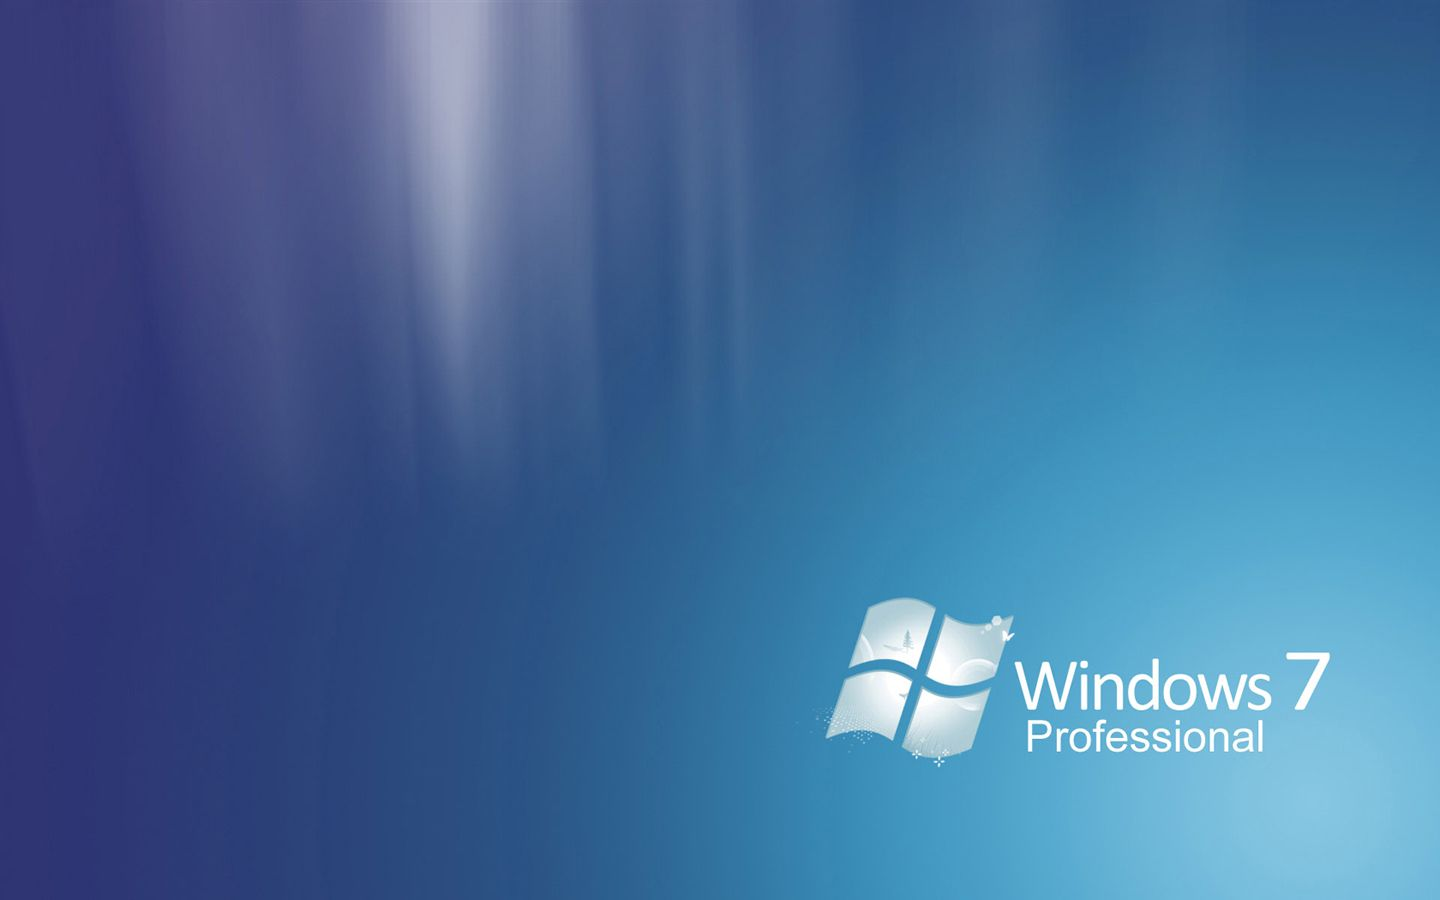 Windows 7 Professional Wallpaper Seven Computers Wallpapers HD